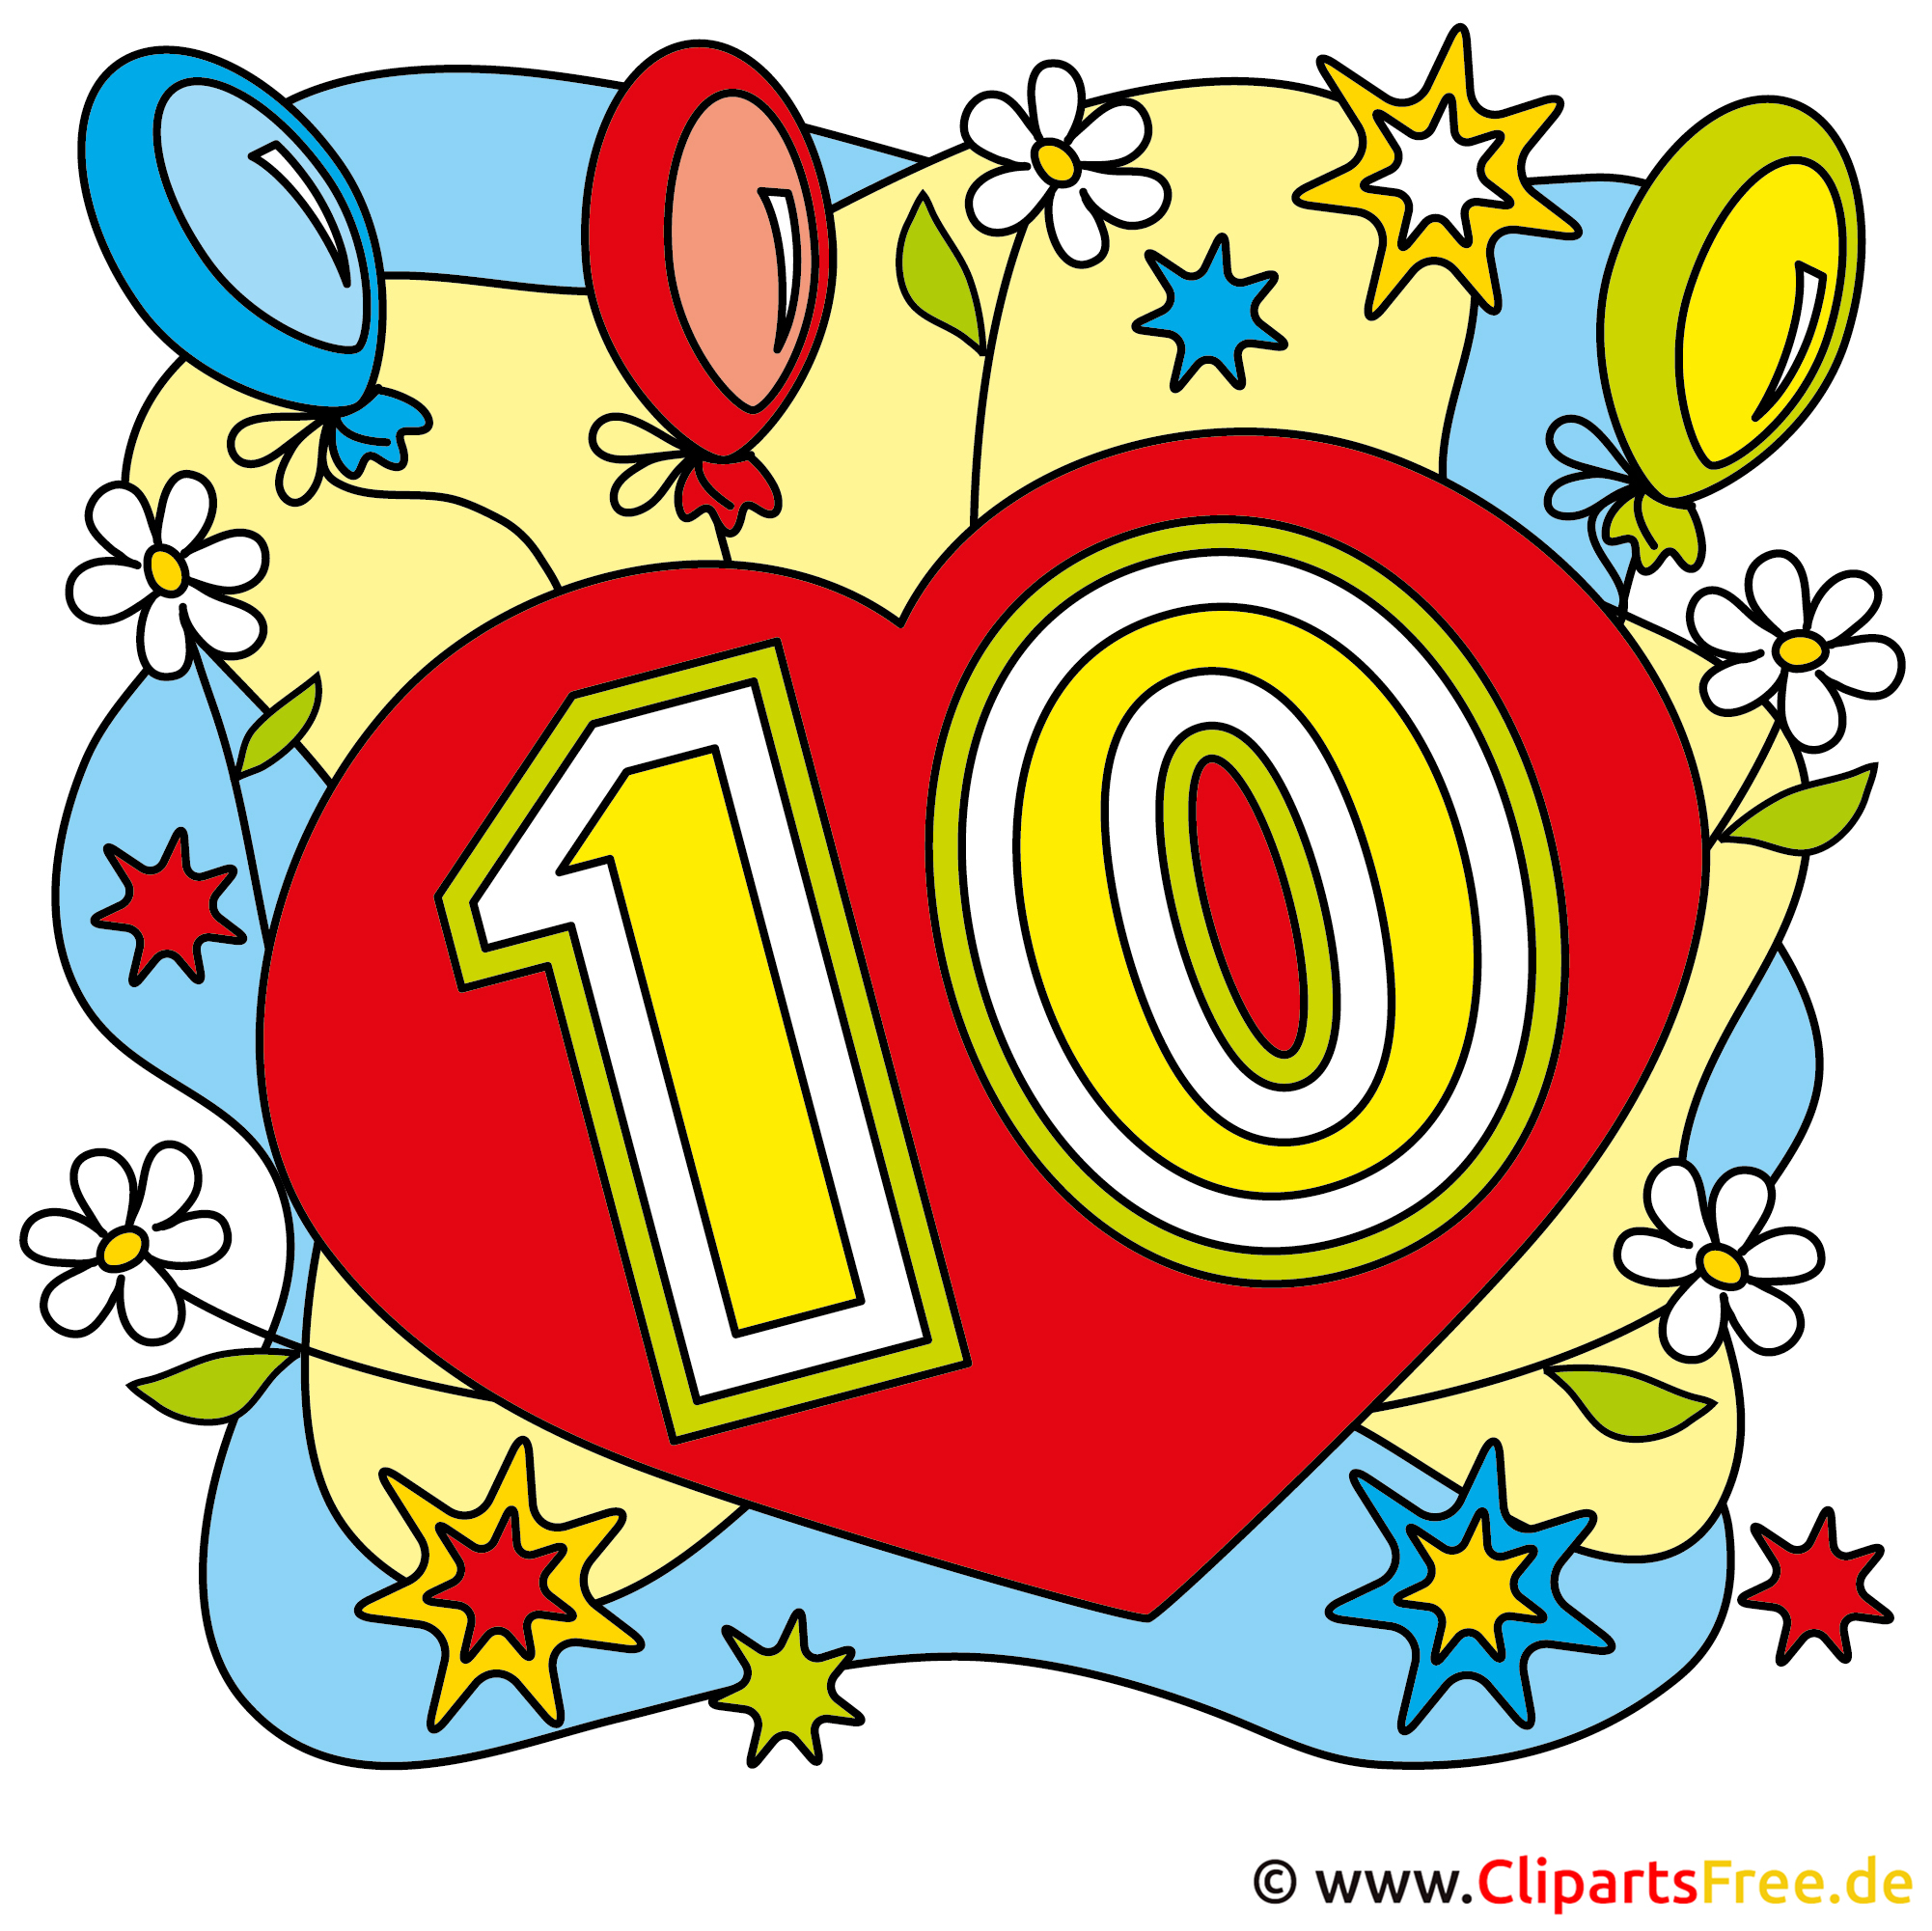 clipart geburtstag - photo #26